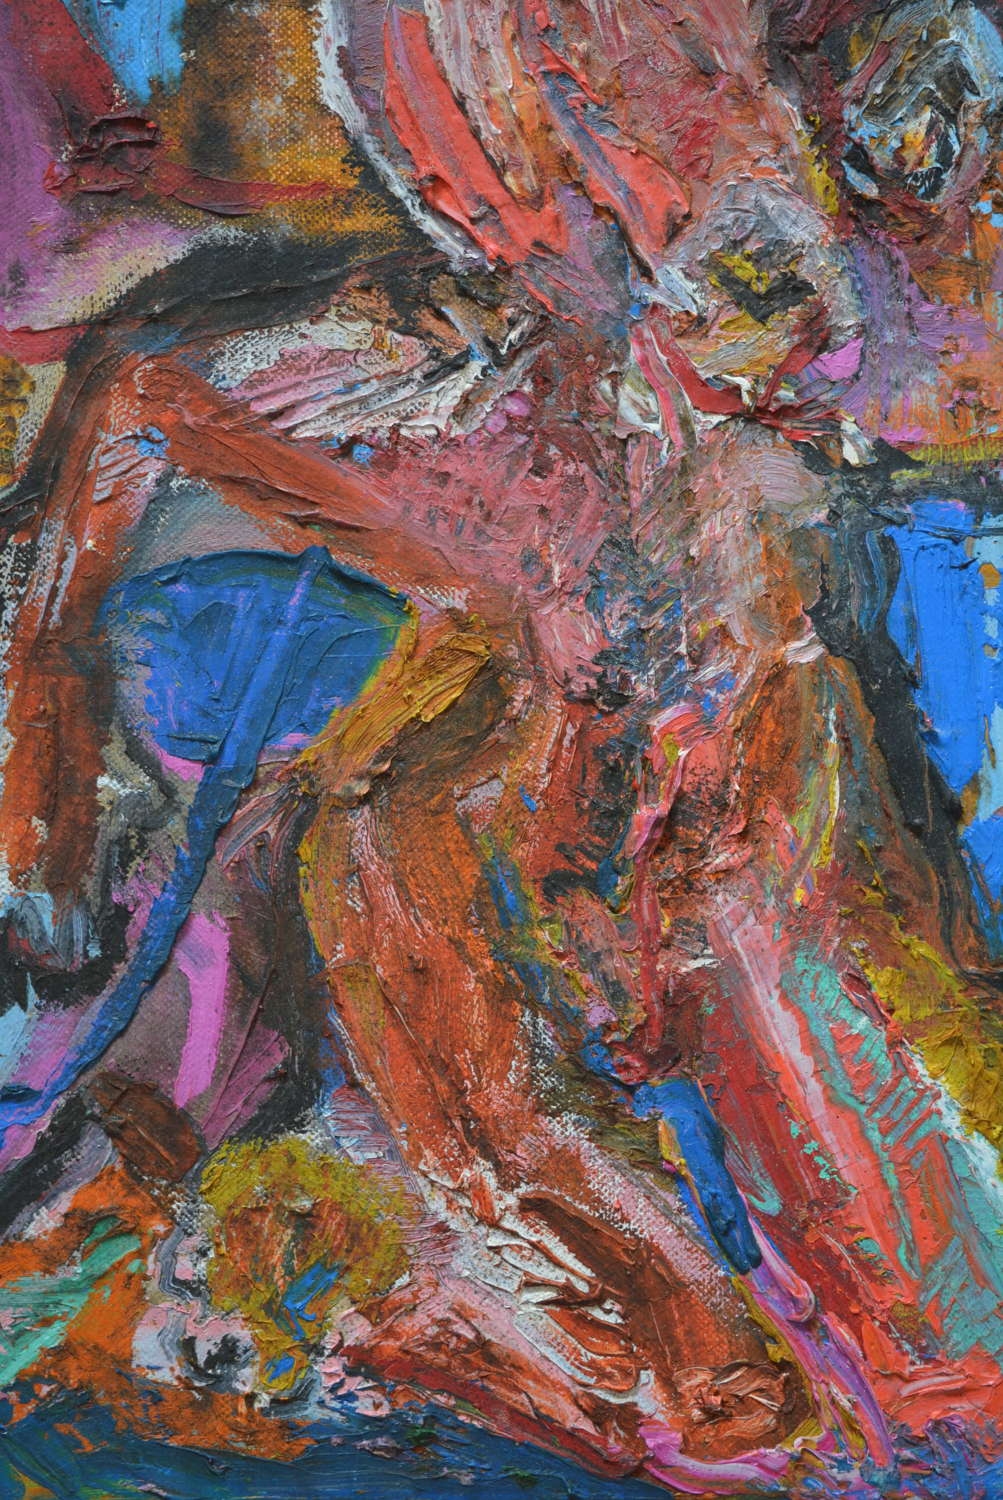 UNSIGNED ABSTRACR FIGURE STUDY